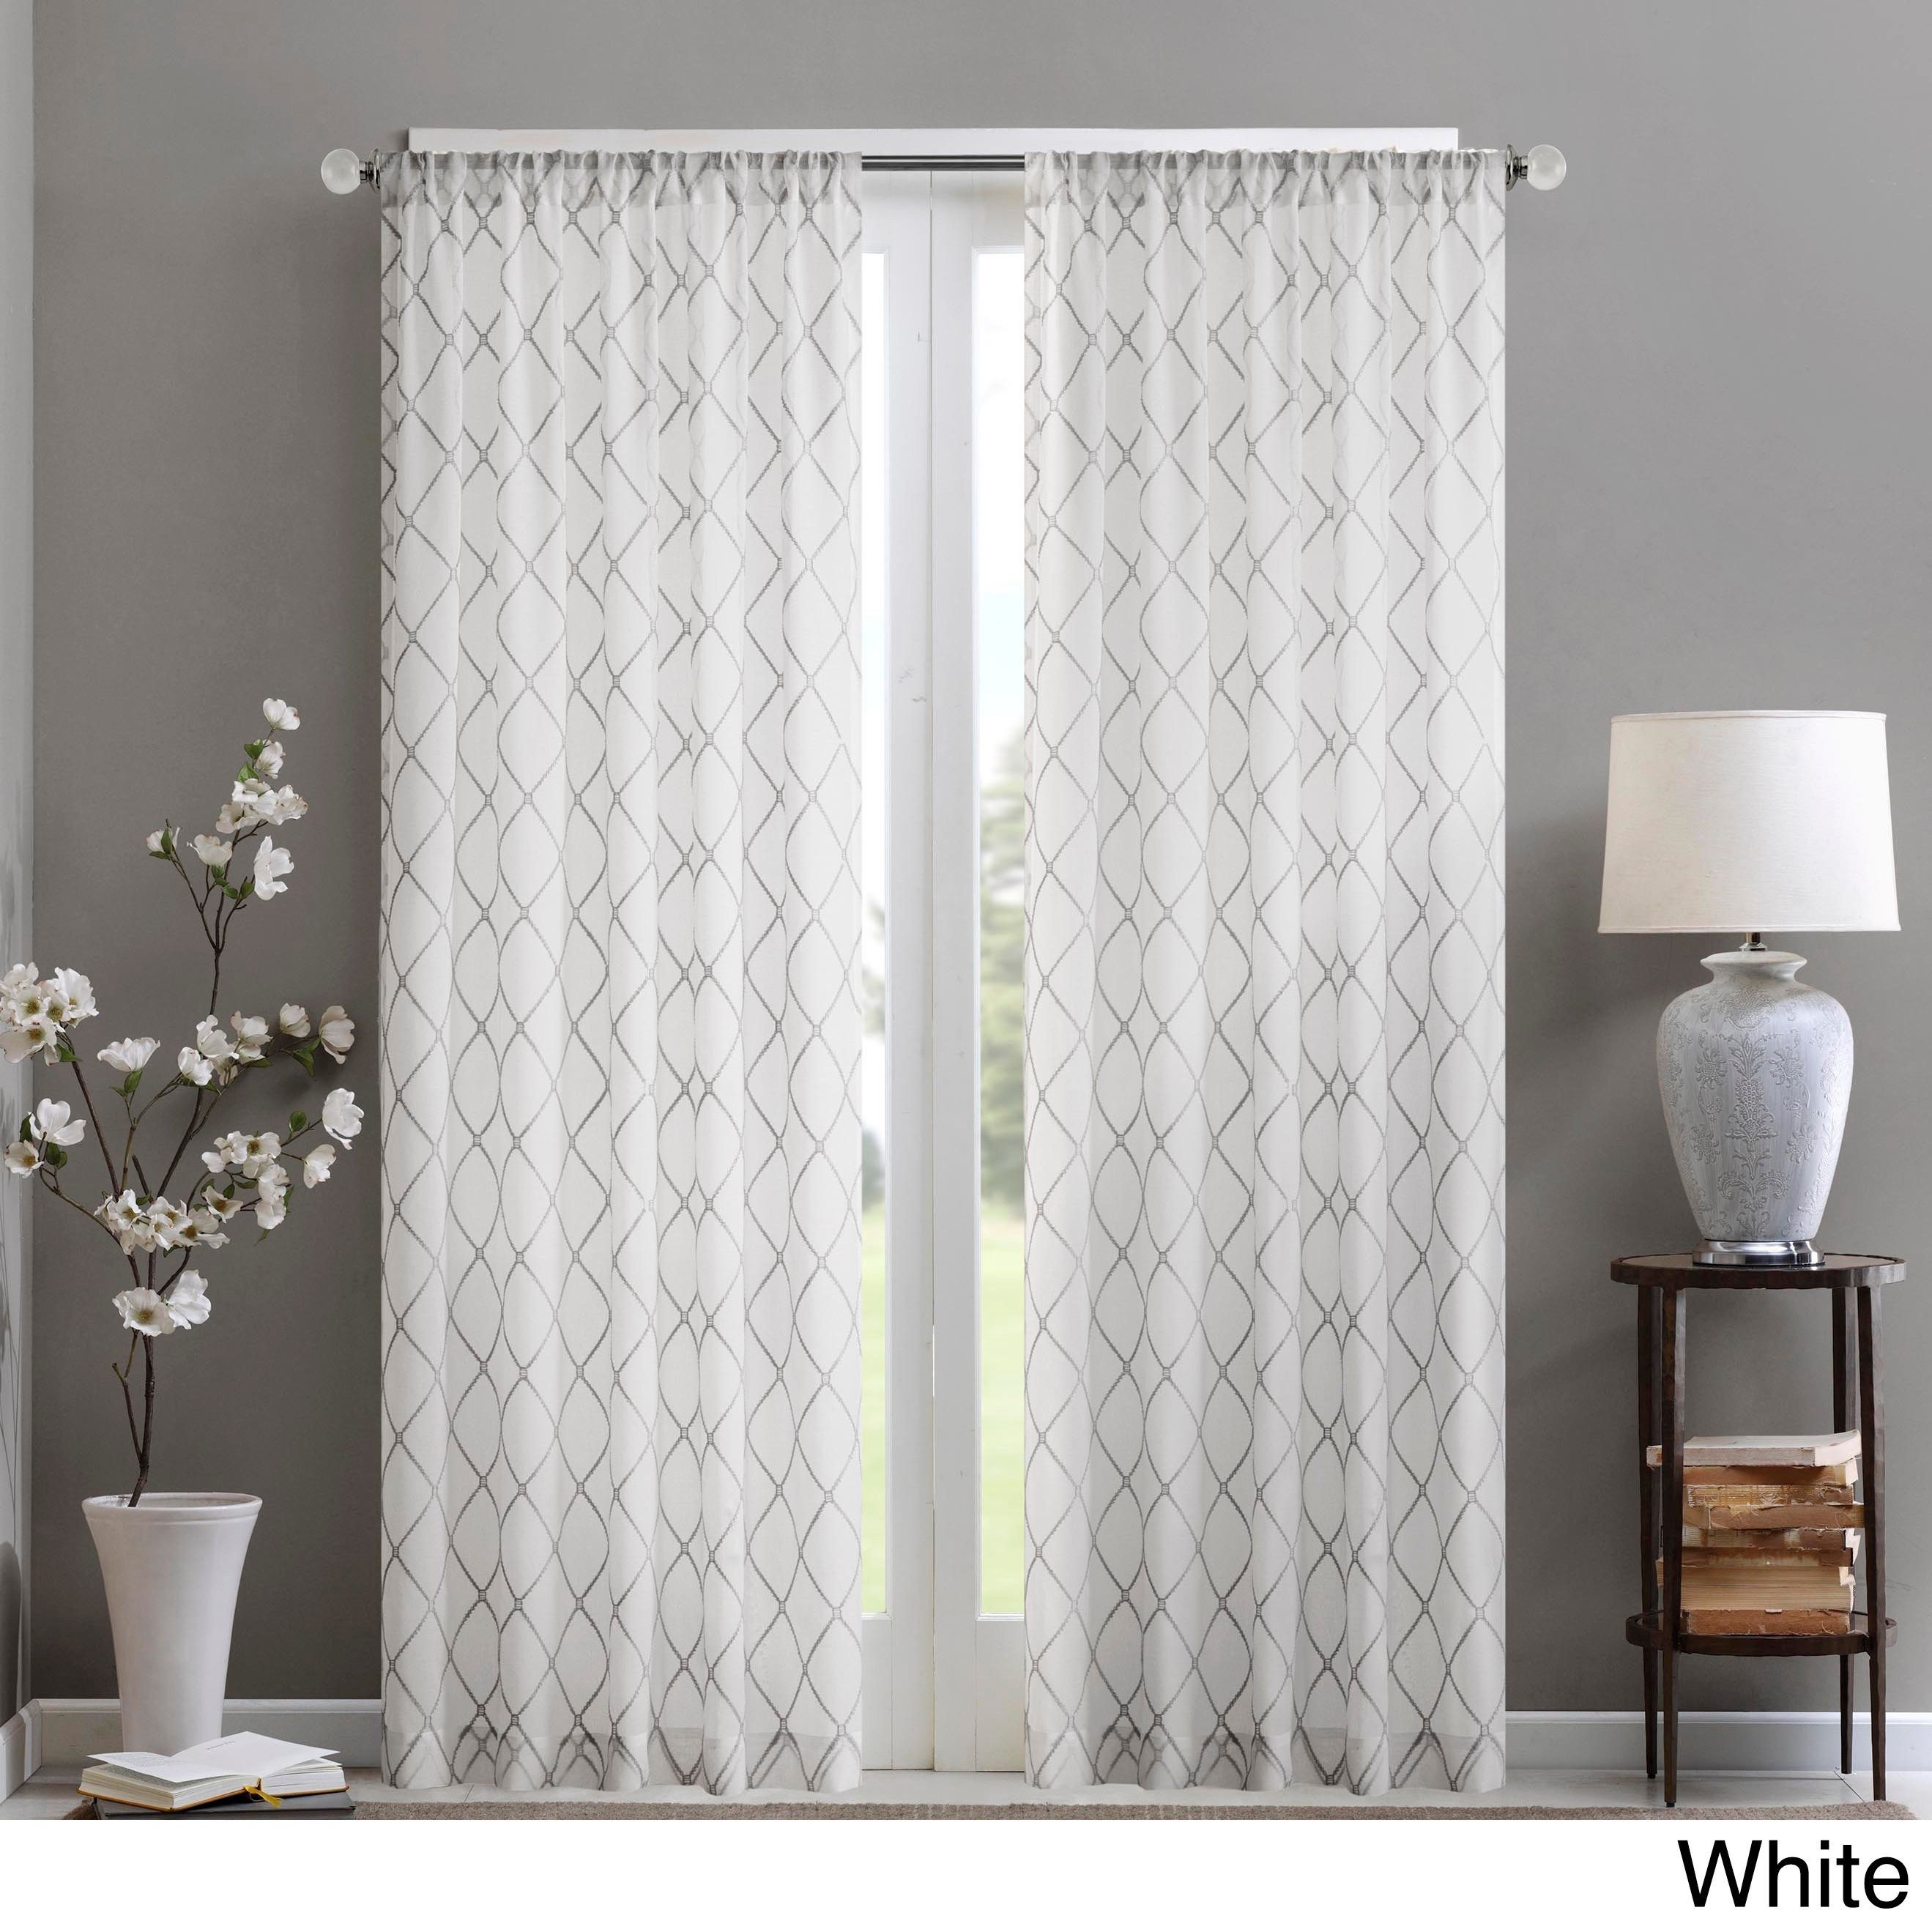 Filter The Glare For Softer Light By Placing This Sheer Madison Park Curtain Panel In A